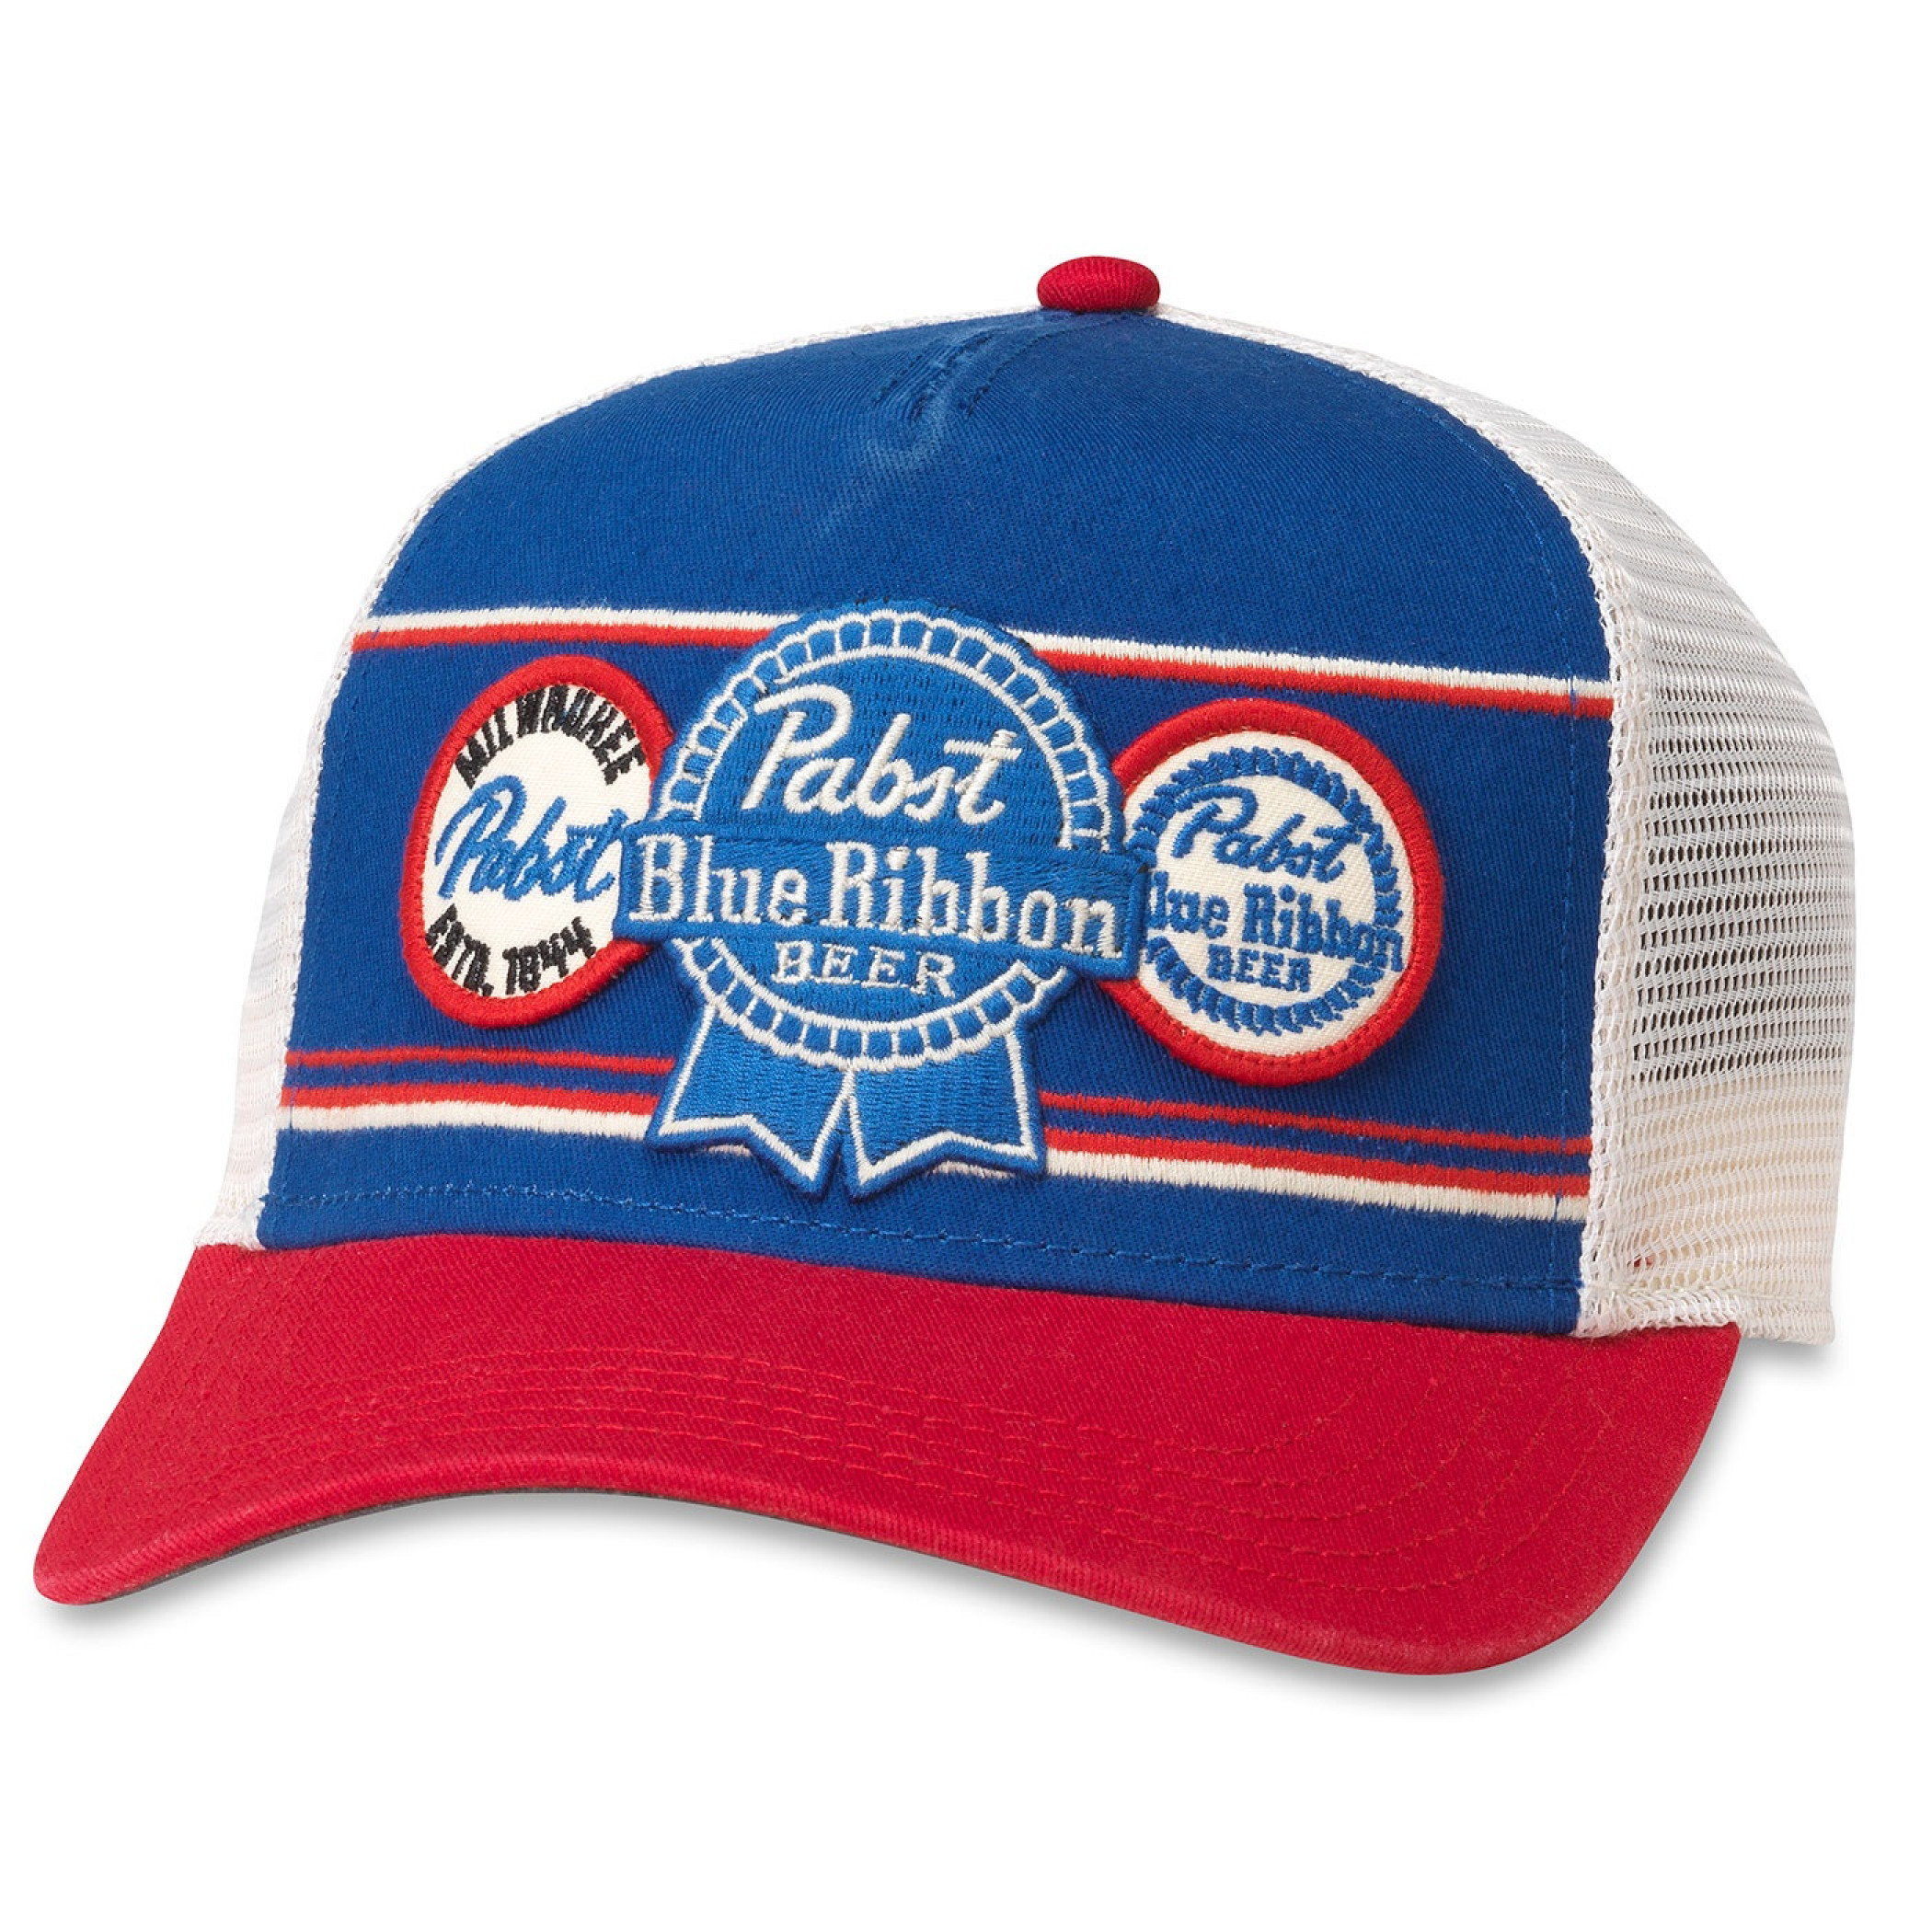 Pabst Blue Ribbon Beer Vintage Mesh Trucker Hat